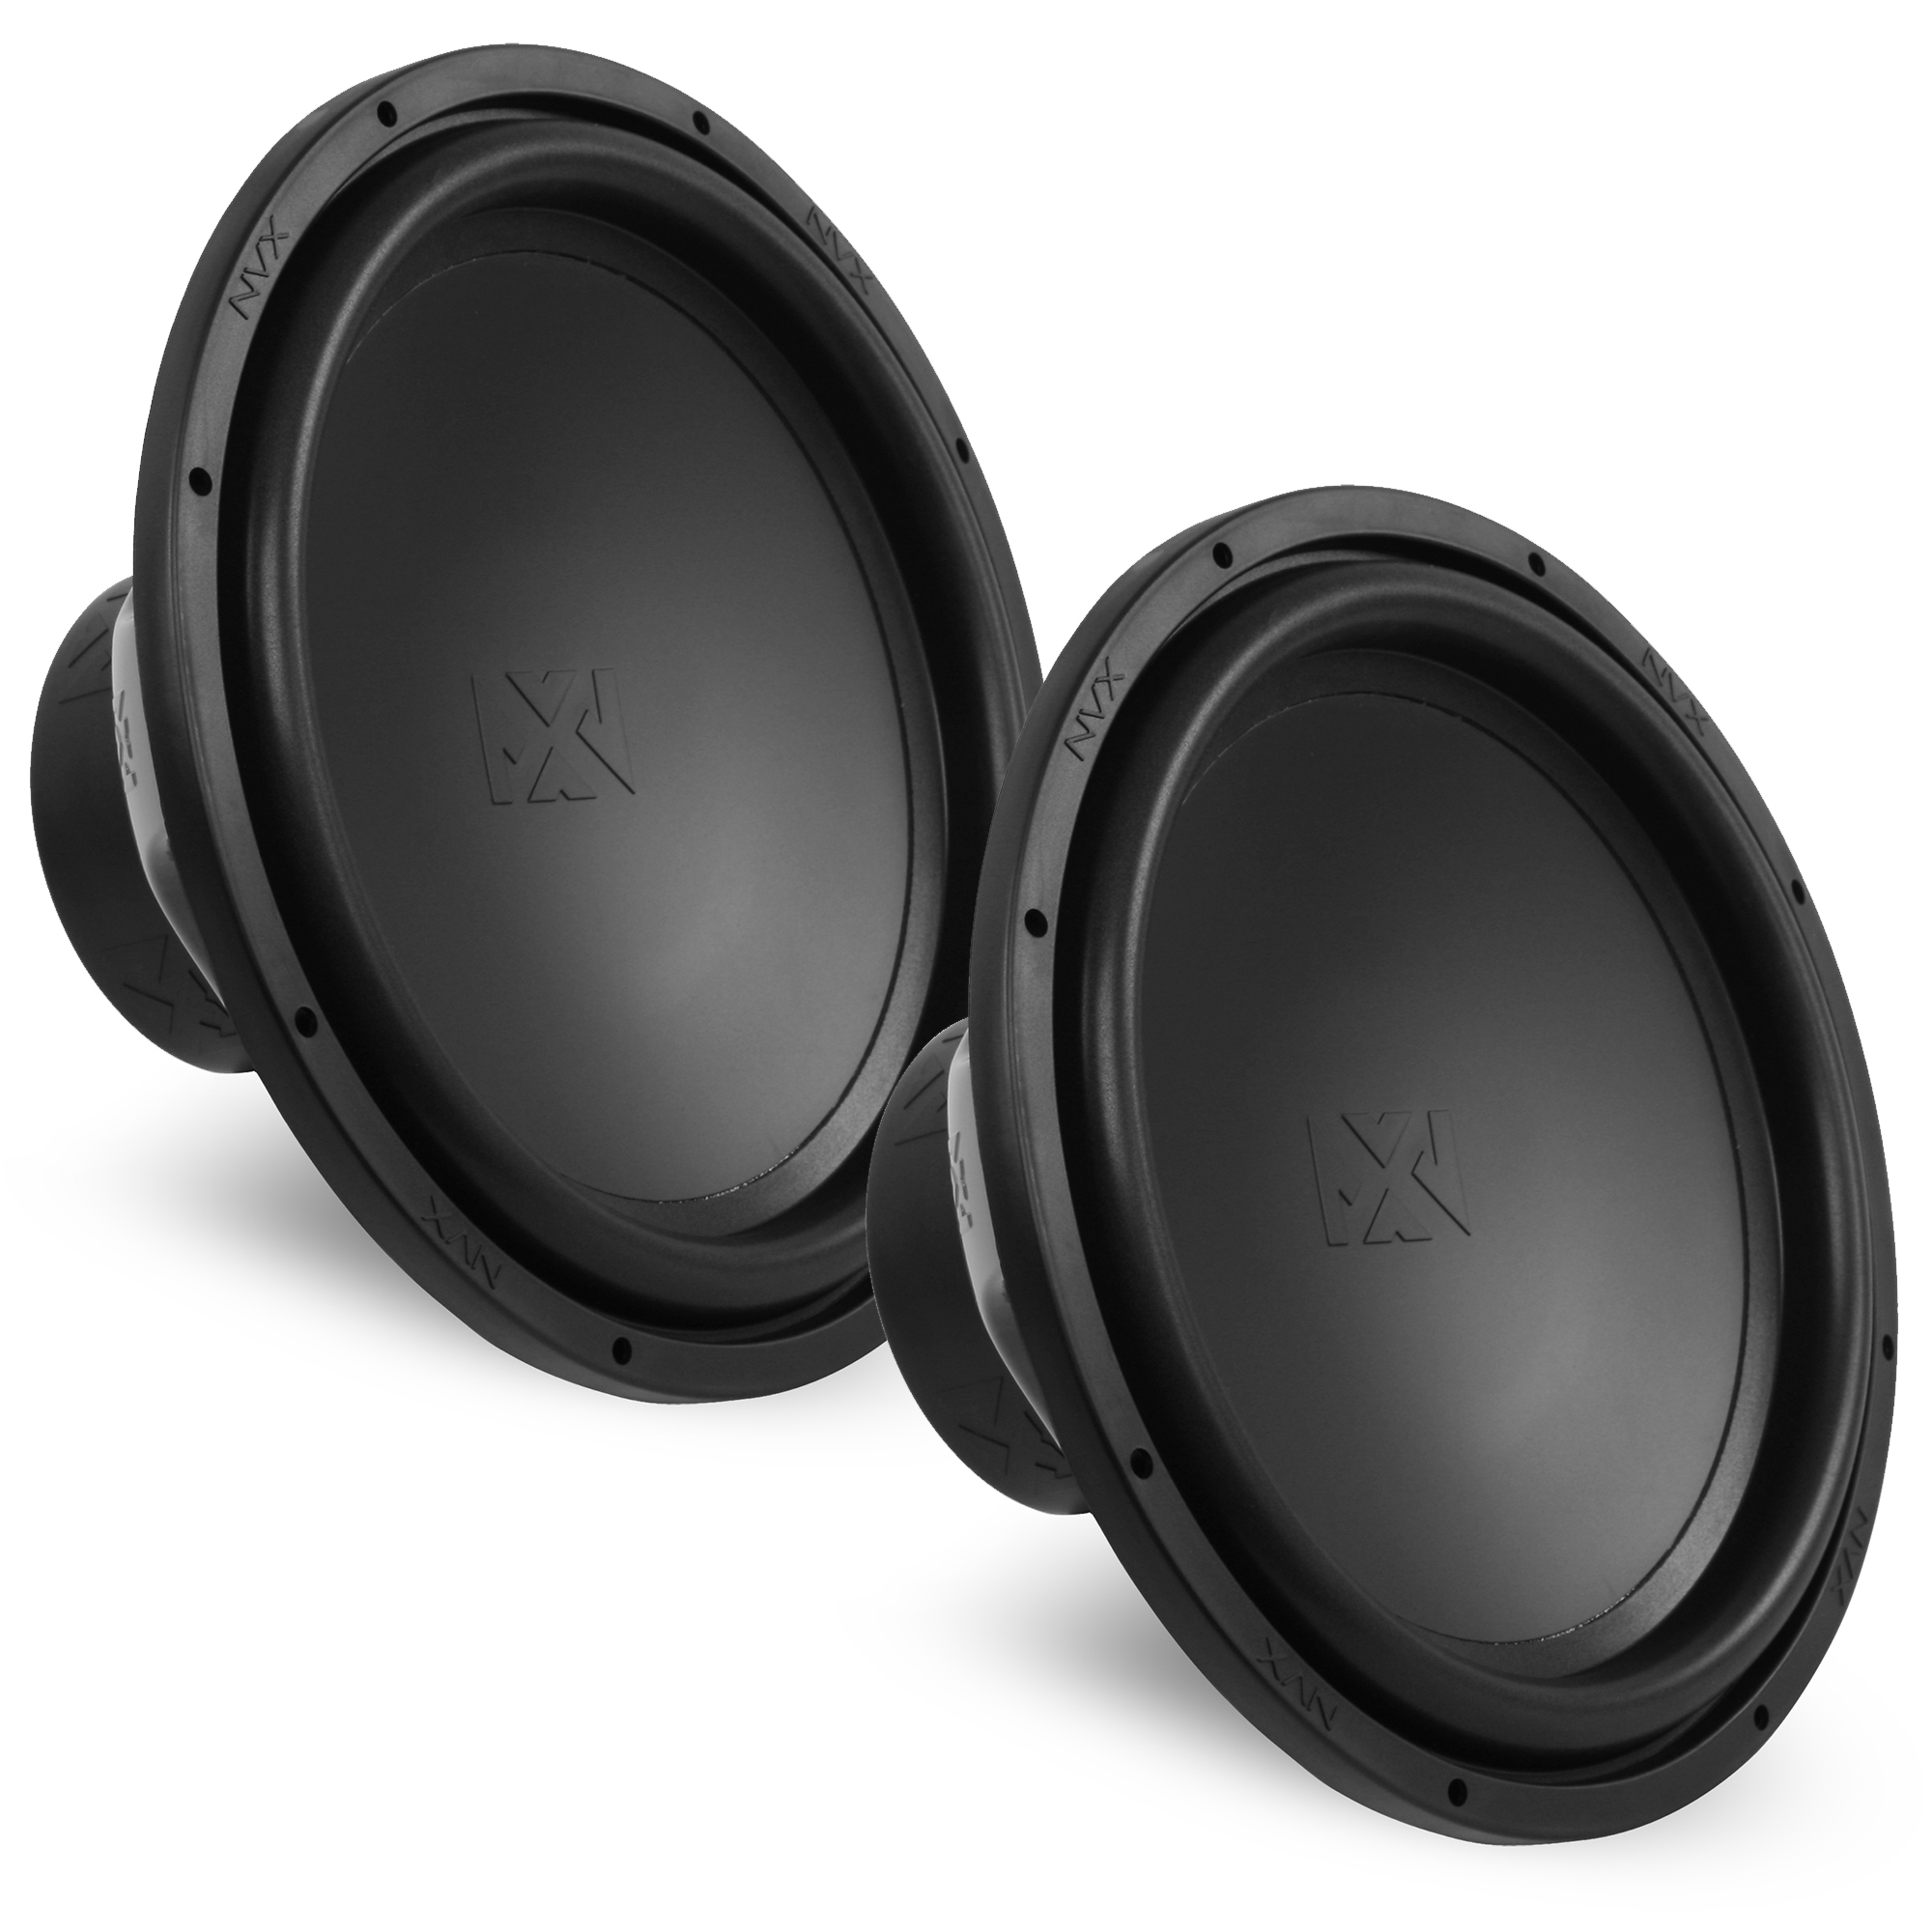 5 Facts You Should Know About the VS-Series Subwoofers